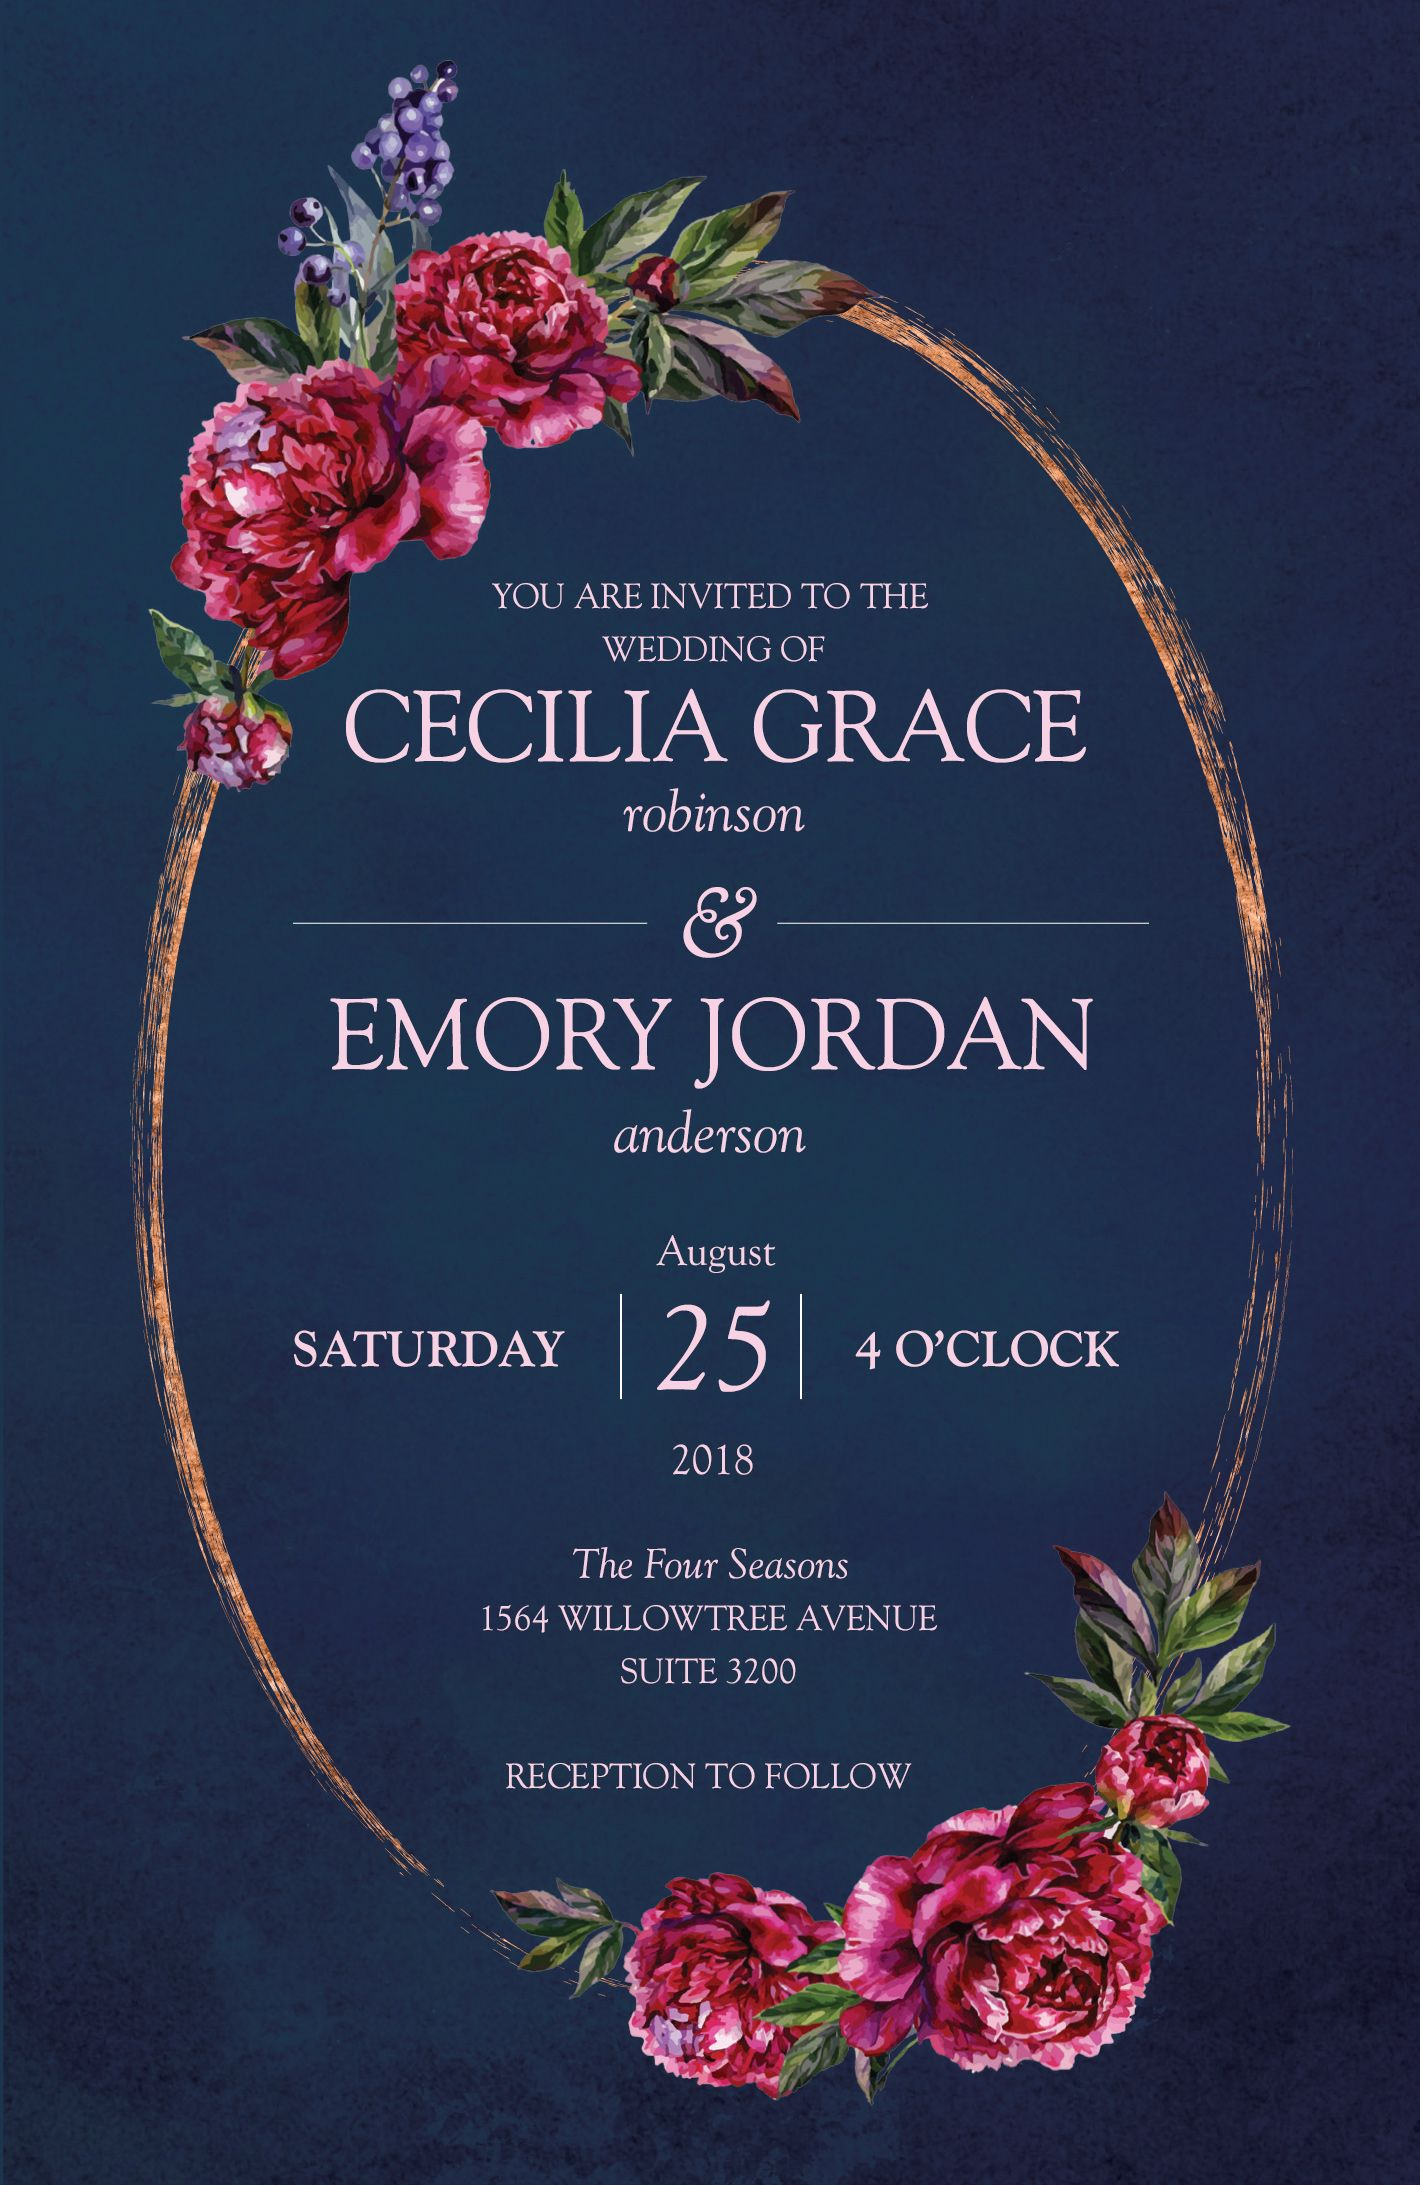 florals and navy invitations